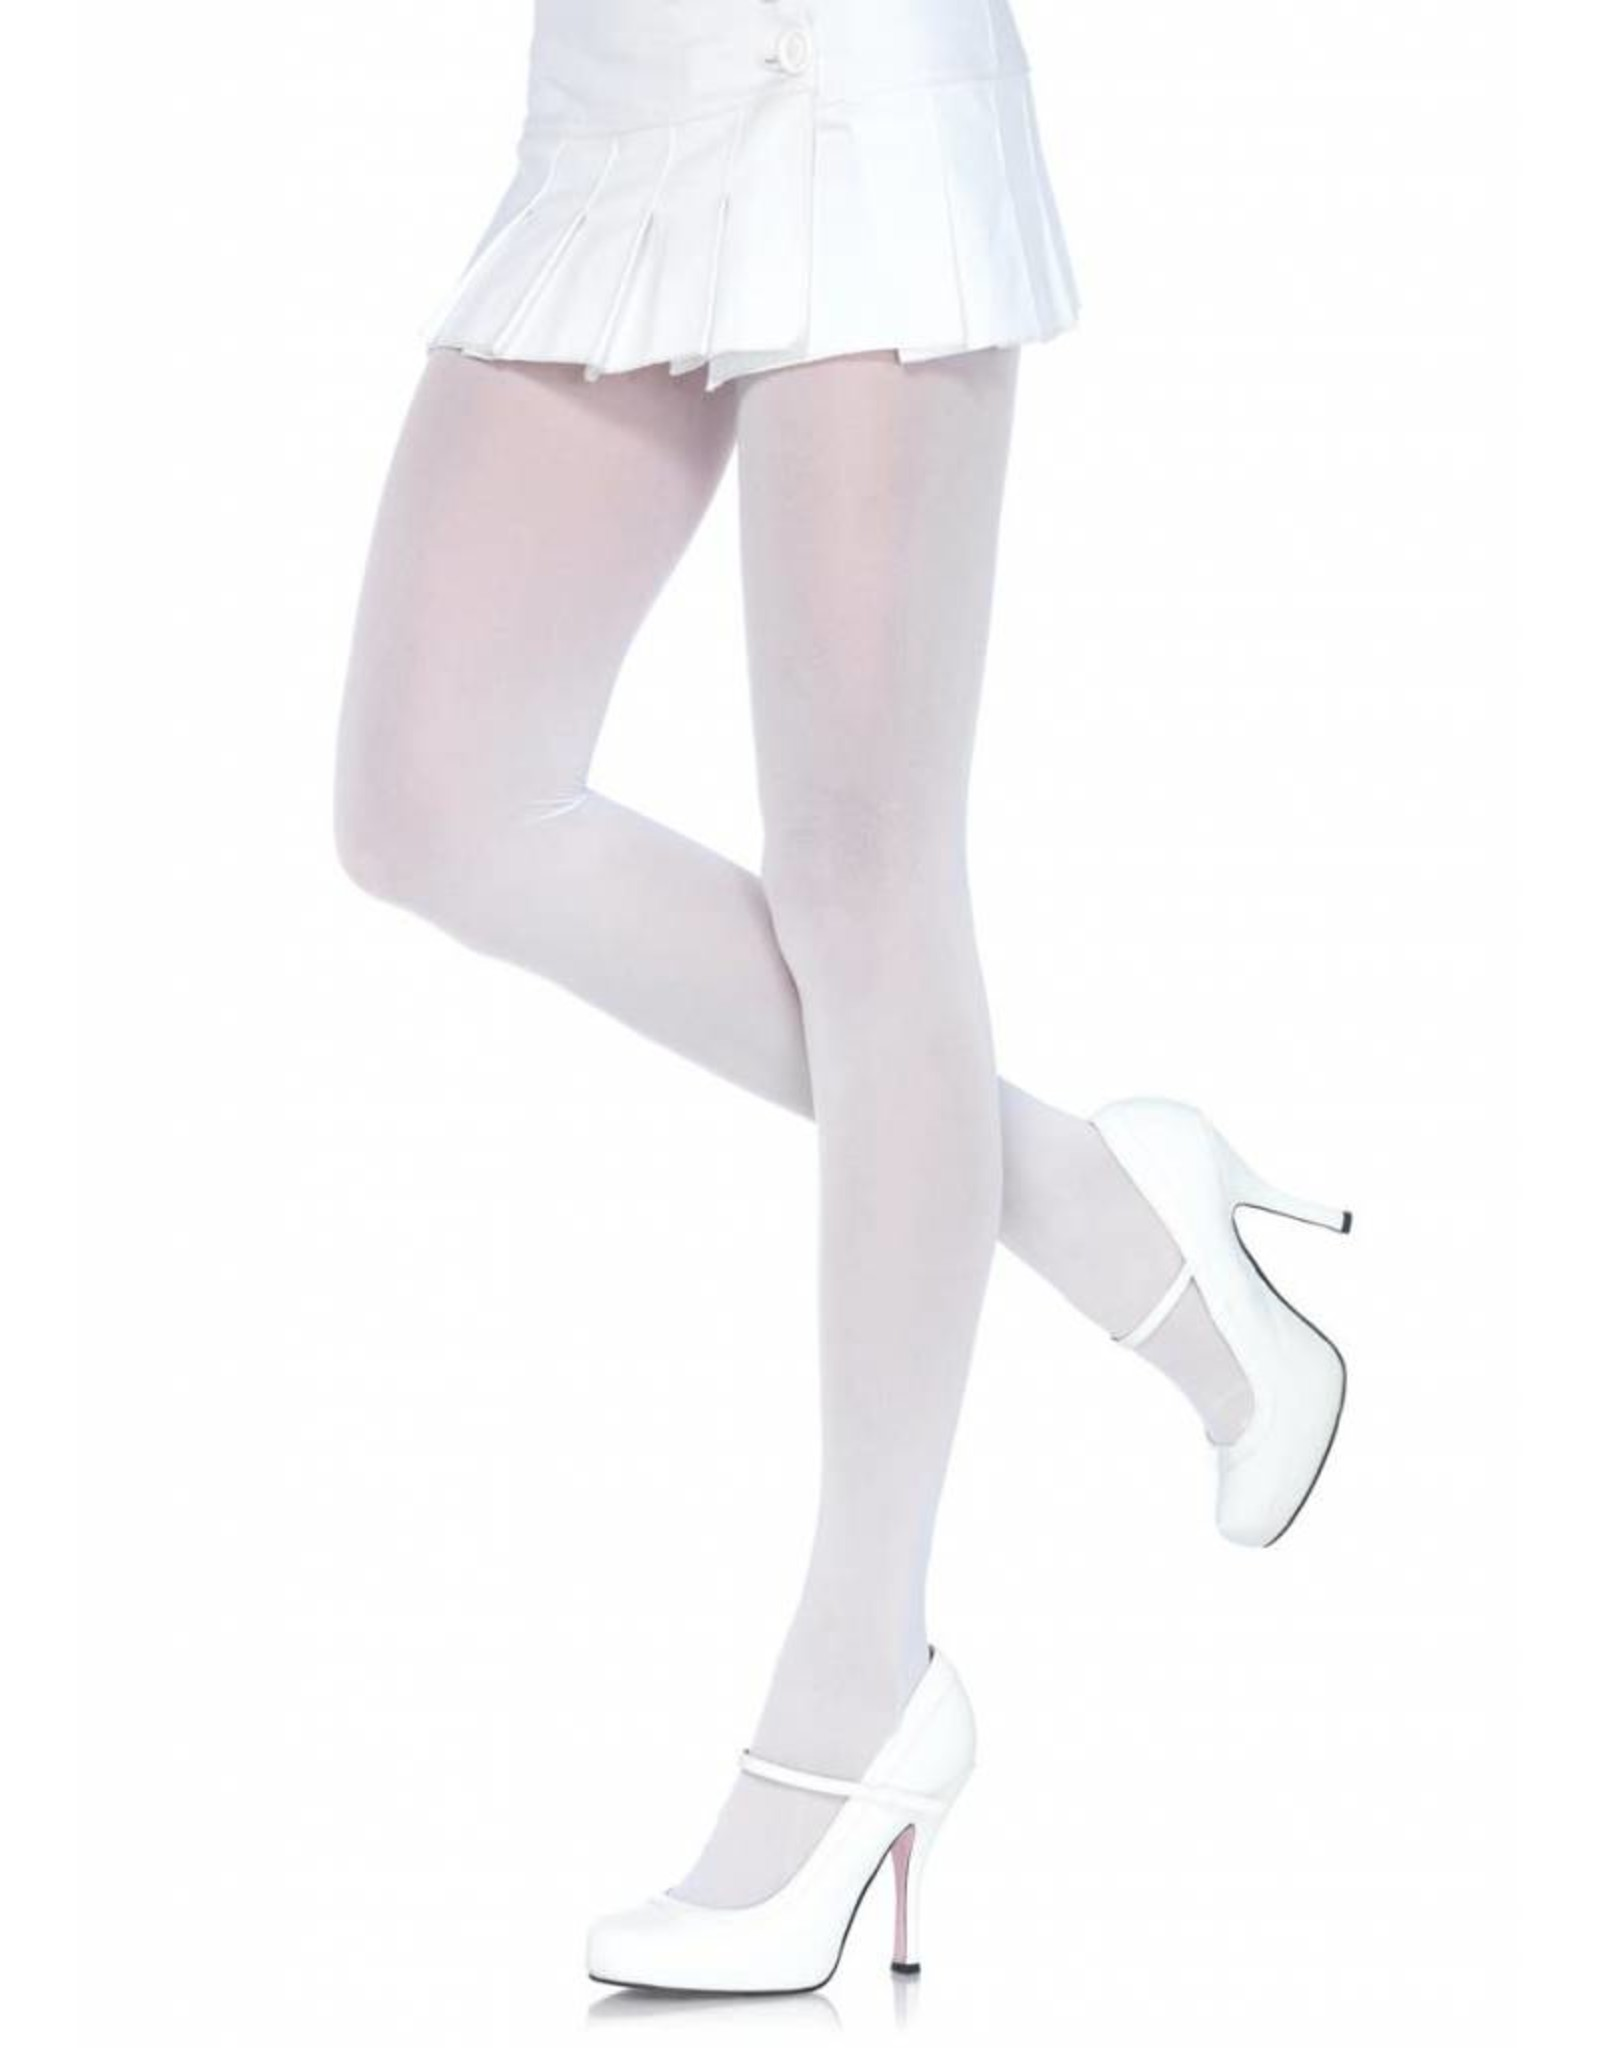 Leg Avenue Nylon Tights White